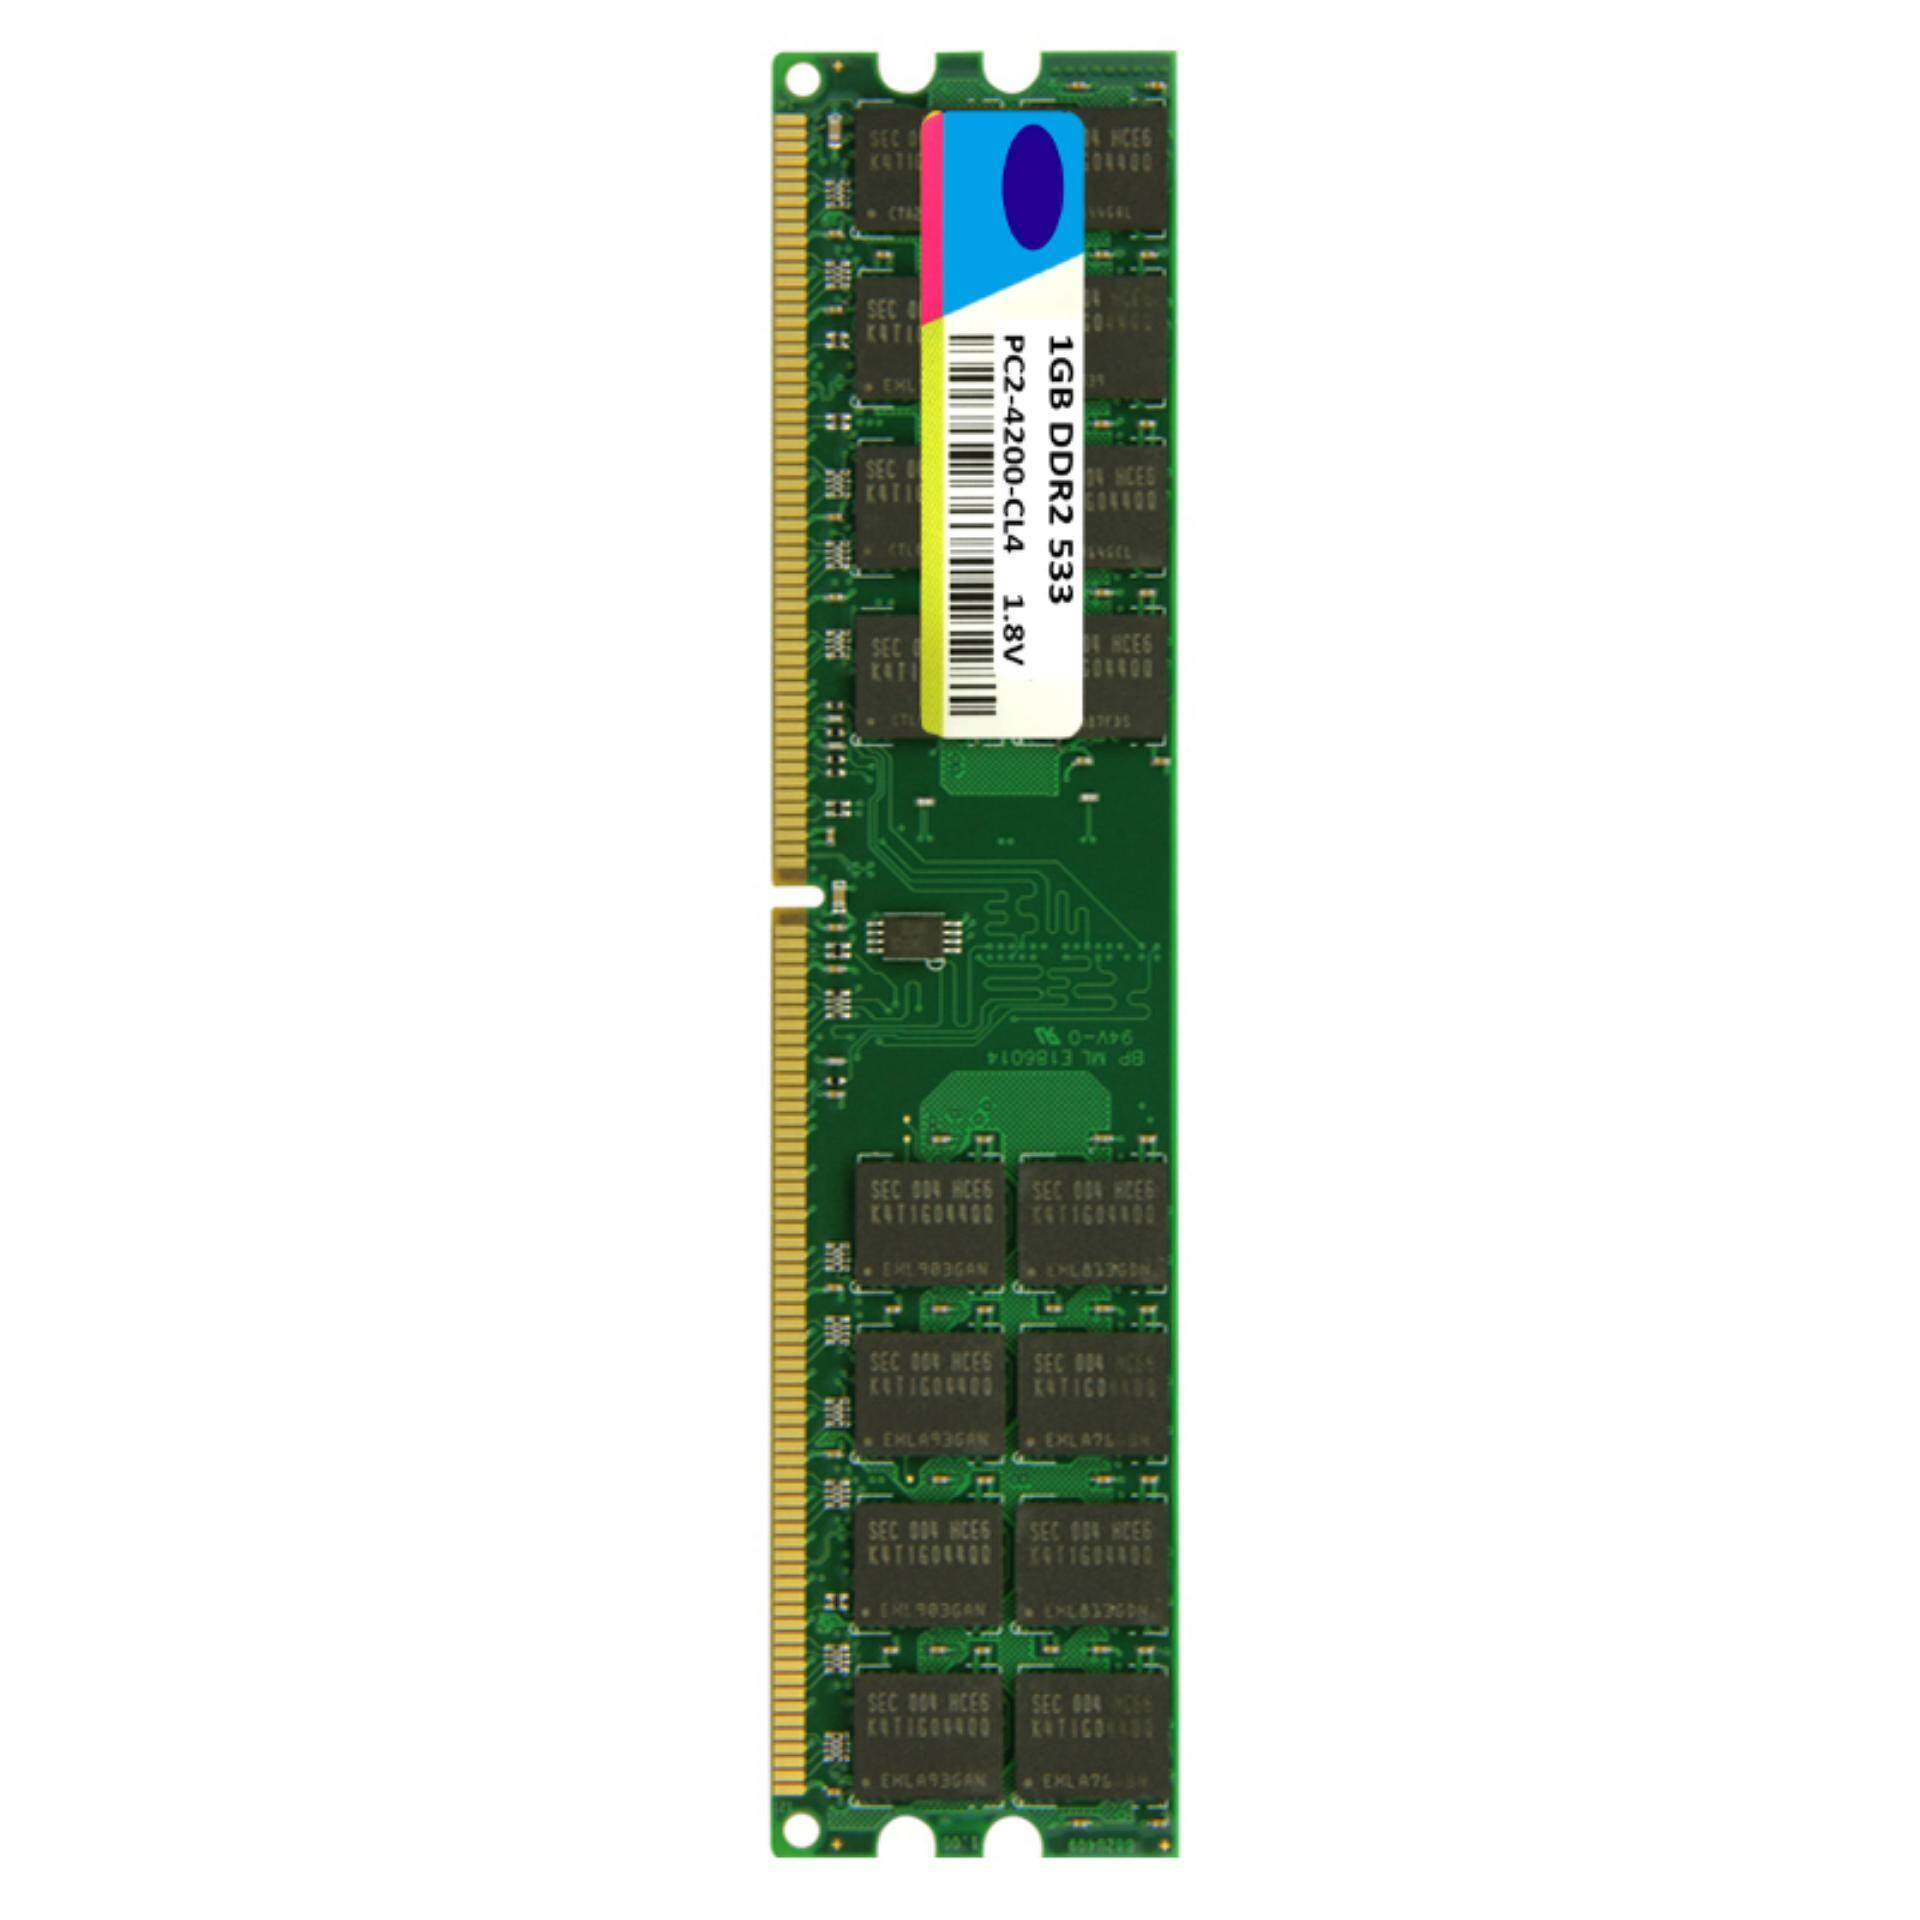 Buy Sell Cheapest Brand New Amd Best Quality Product Deals Ram Memori Ddr2 2gb Pake Hedsink South Rise 533 Pc2 4200 Ddr 2 Mhz